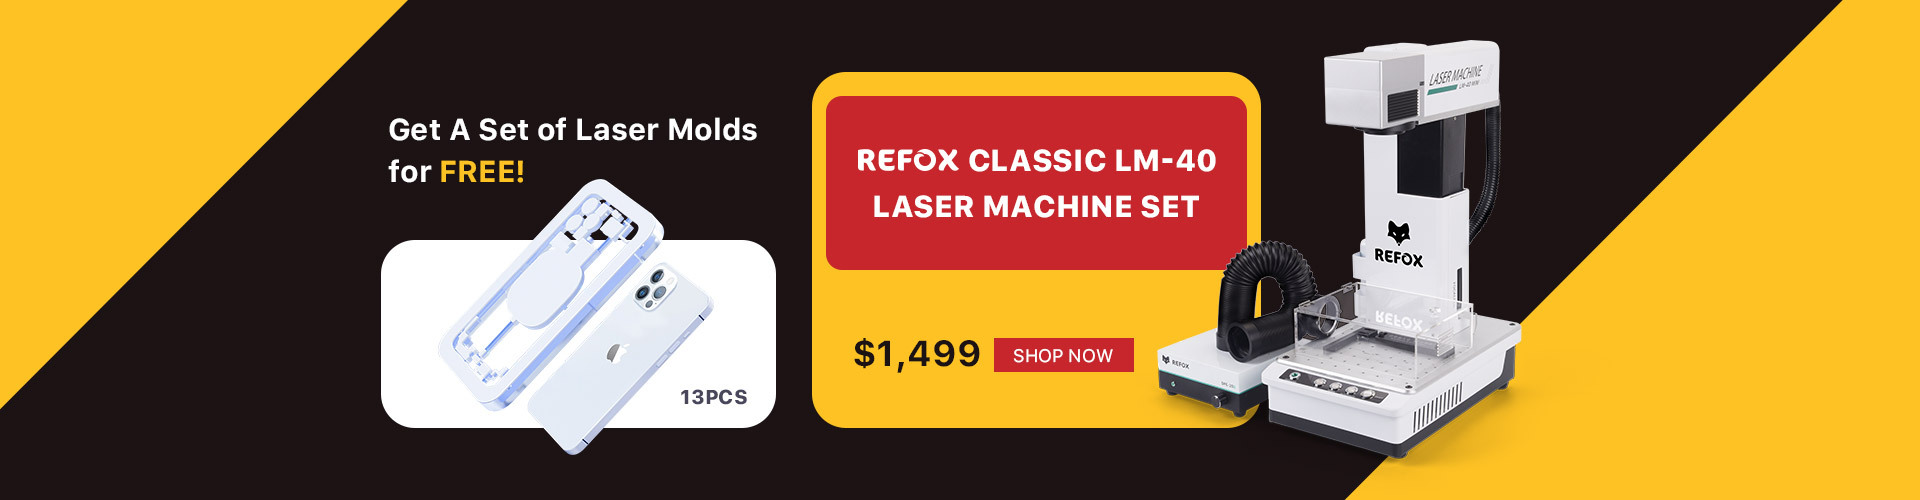 REFOX LM-40 Laser Machine Set with Free Molds